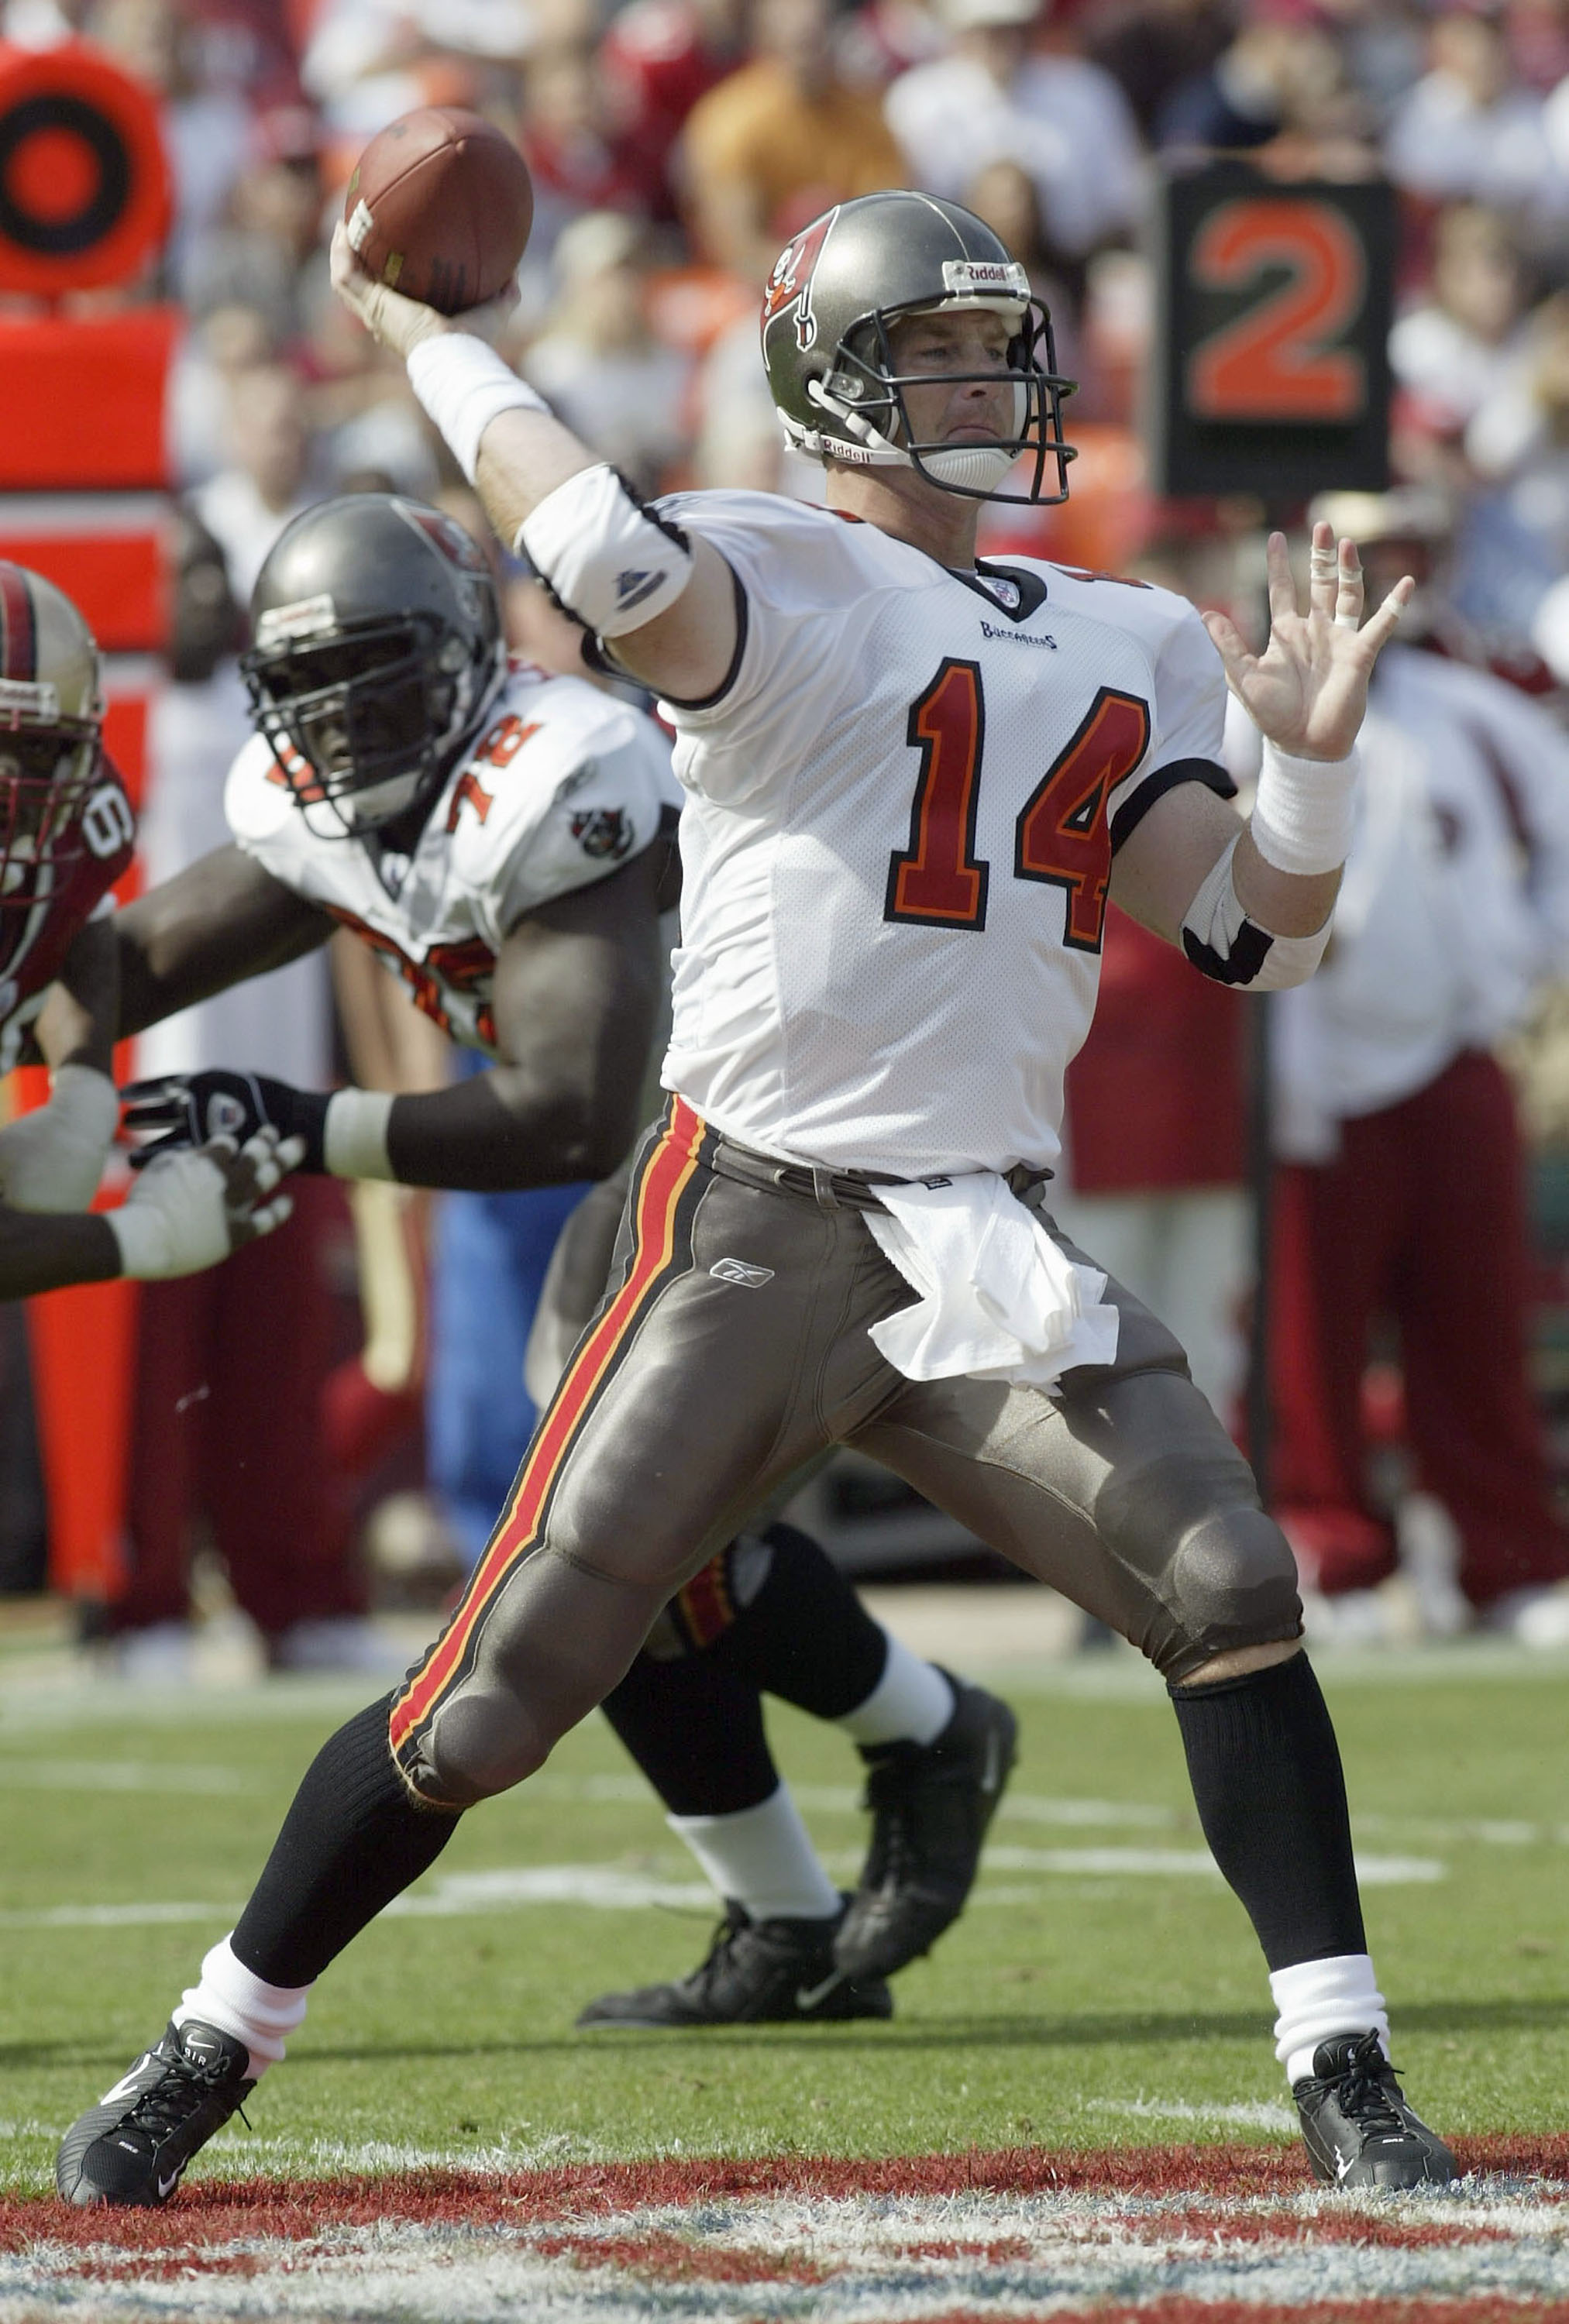 SAN FRANCISCO  - OCTOBER 19:  Quarterback Brad Johnson #14 of the Tampa Bay Buccaneers throws a pass against the San Francisco 49ers on October 19, 2003 at 3Comm Park in San Francisco, California.  (Photo by Stephen Dunn/Getty Images)